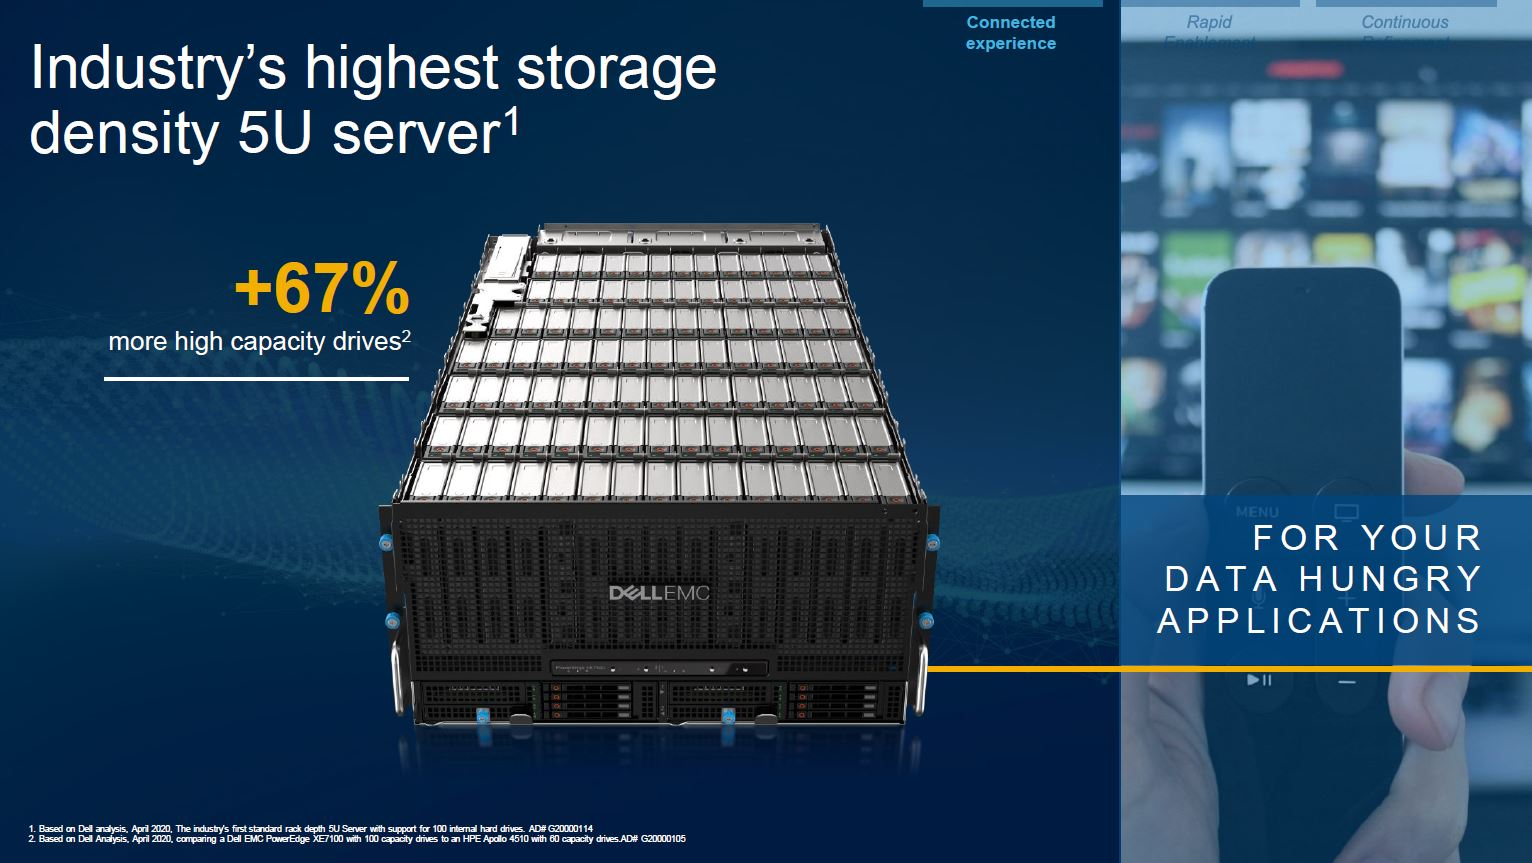 Dell EMC XE7100 Announcement Highest Density